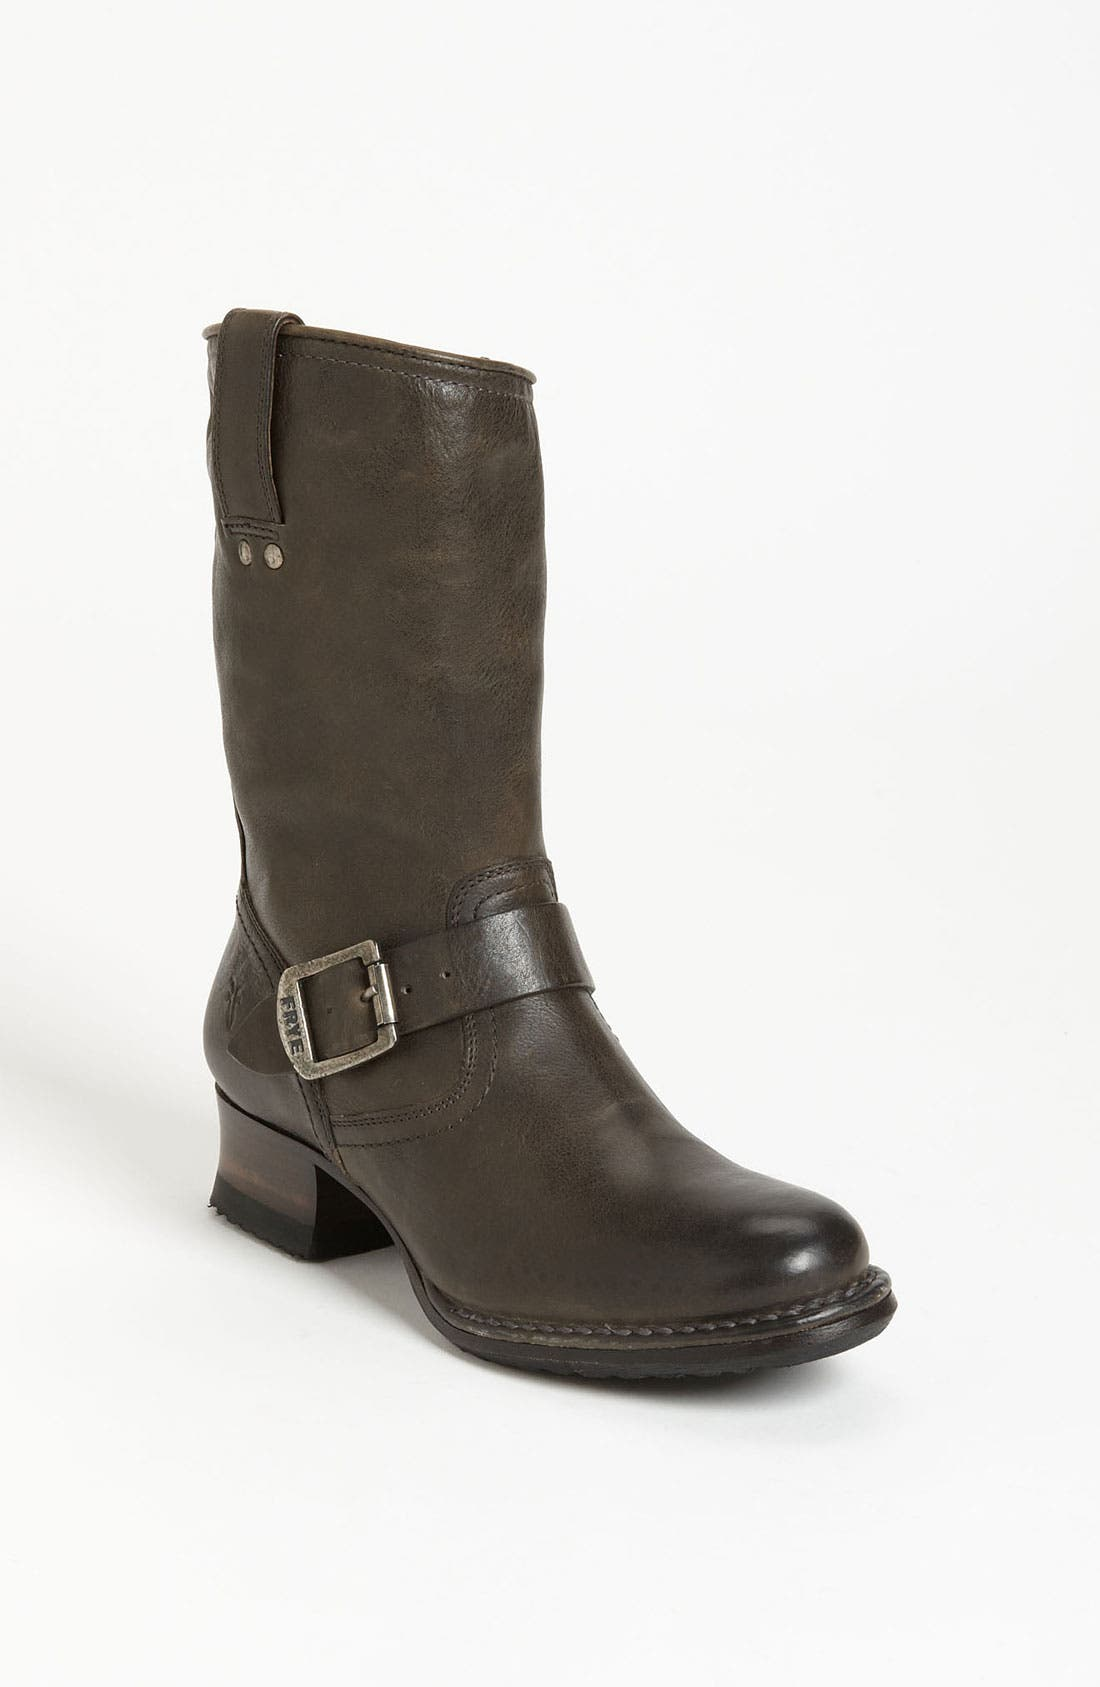 Alternate Image 1 Selected - Frye 'Martina Engineer Short' Boot